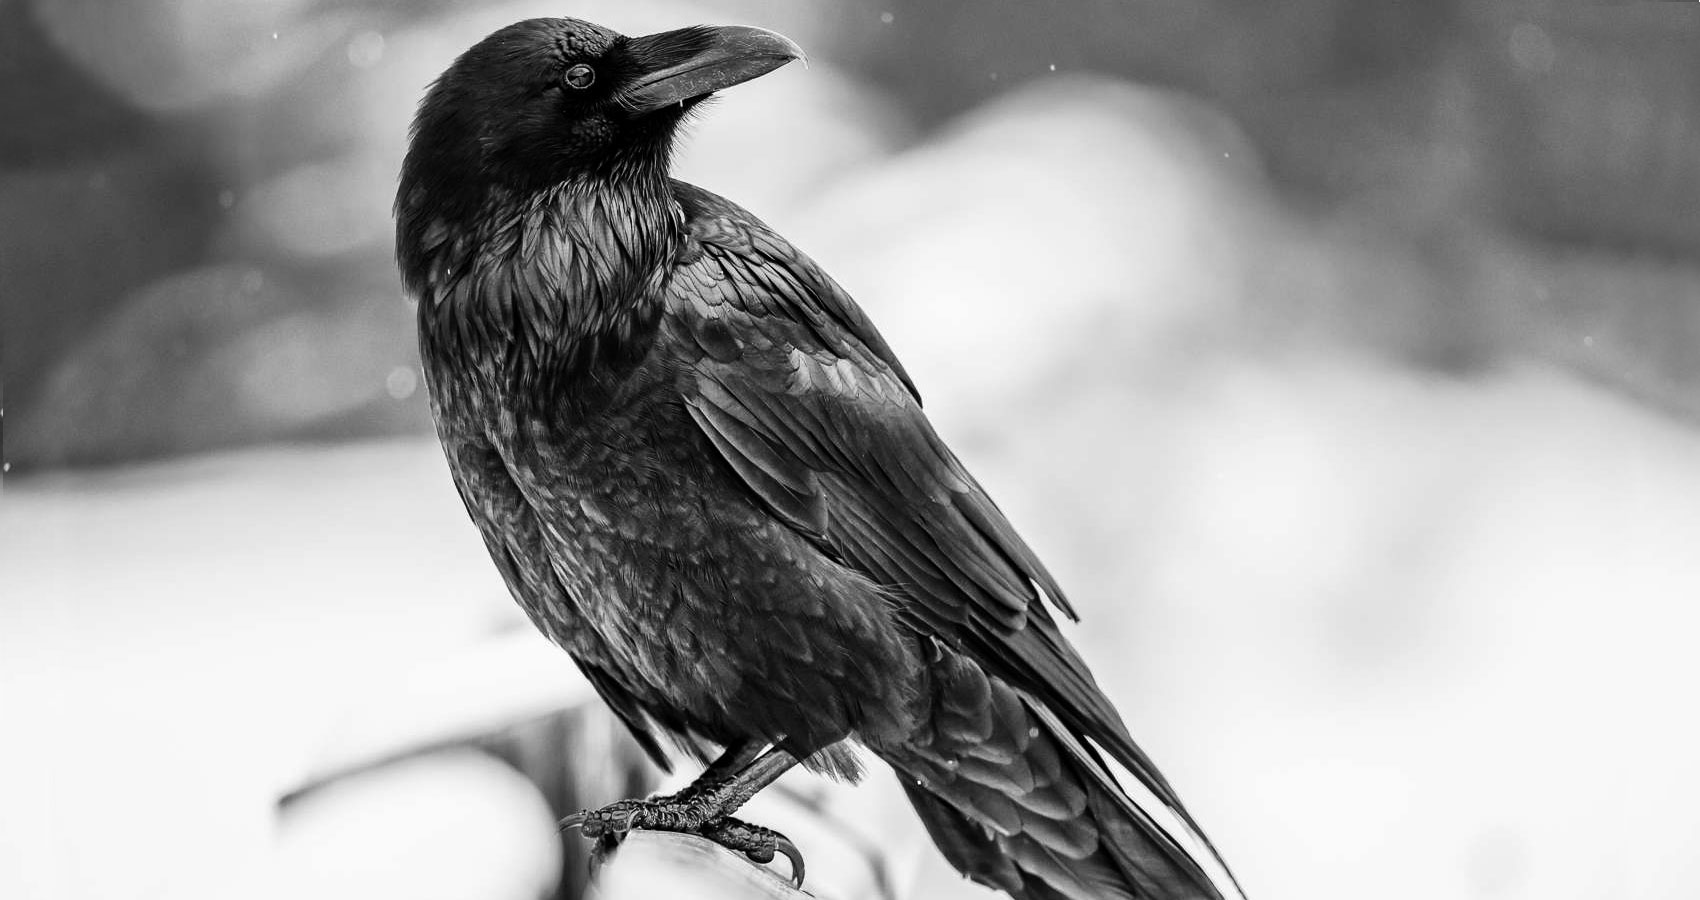 Raven written by Stanley Wilkin at Spillwords.com